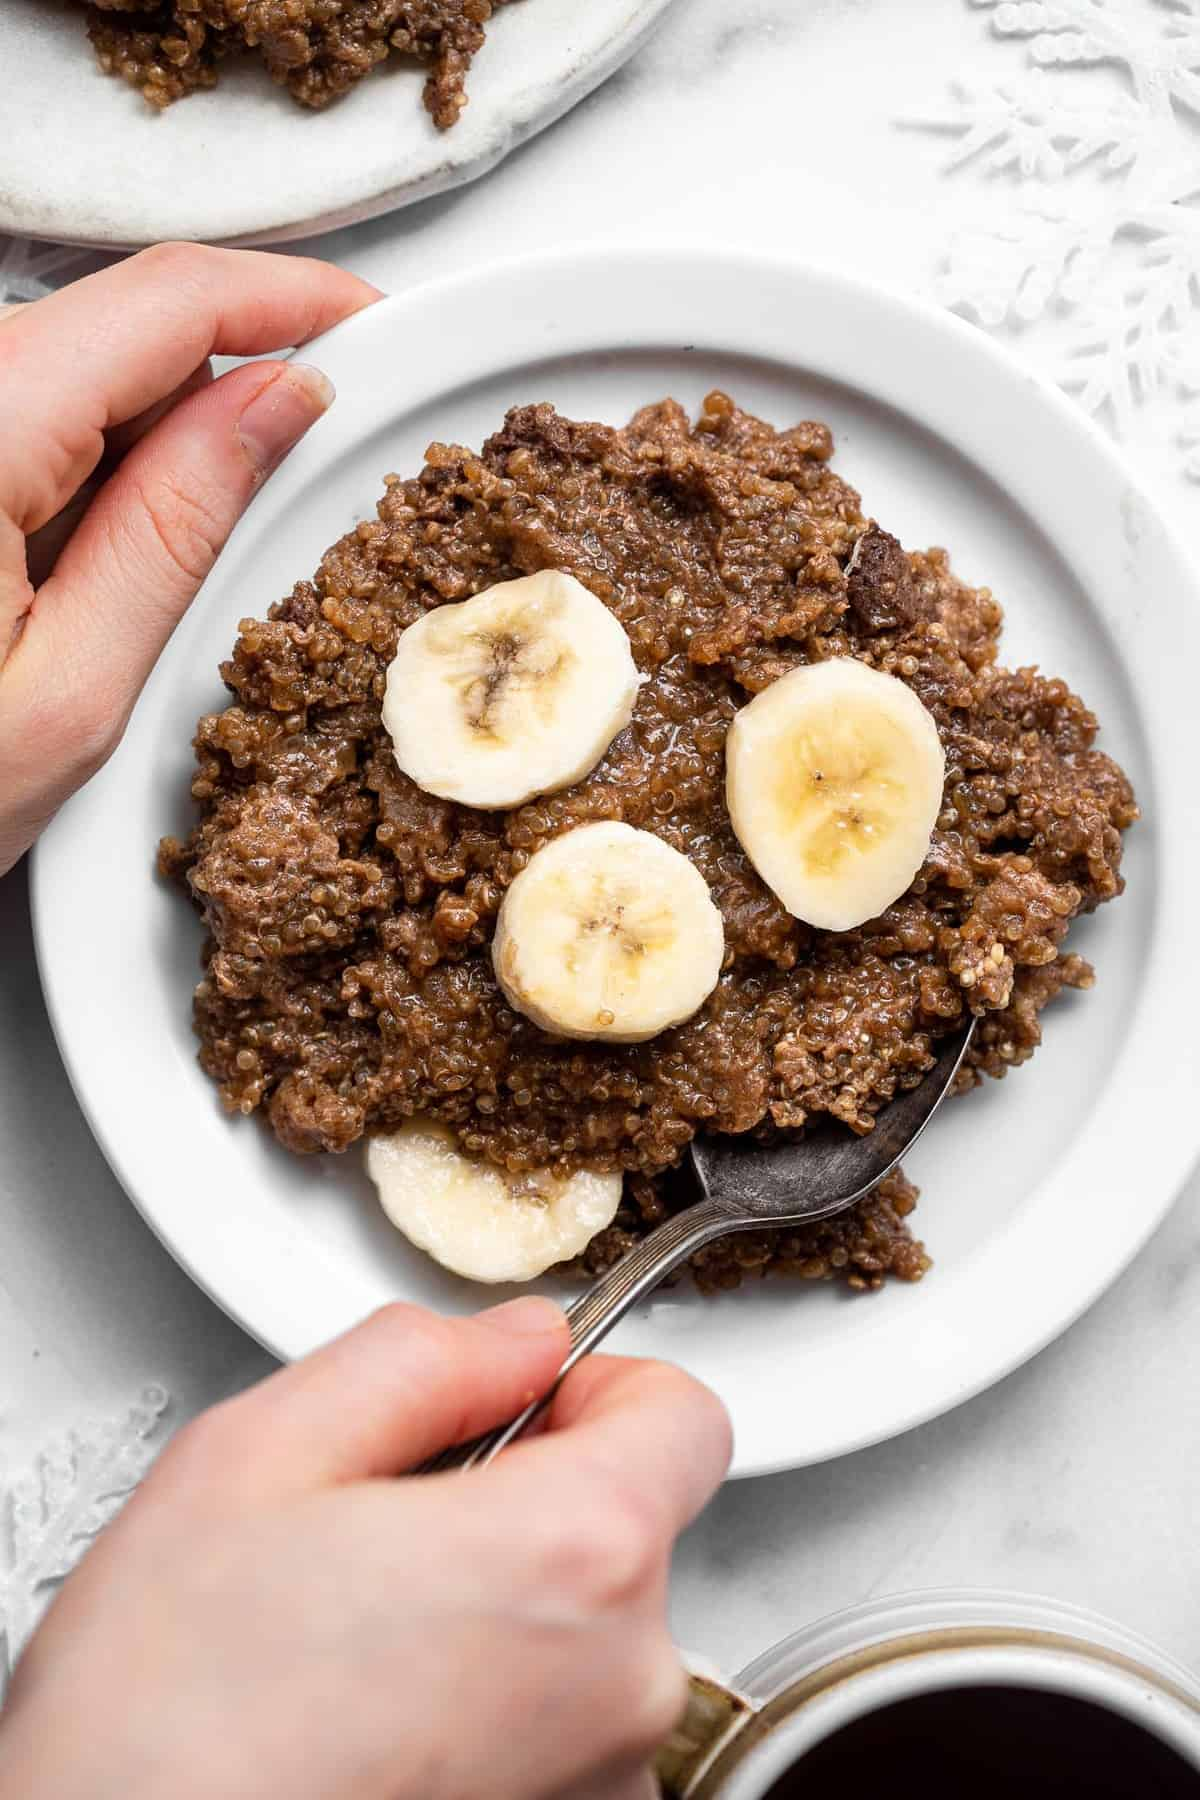 a hand holding a plate of quinoa breakfast bake